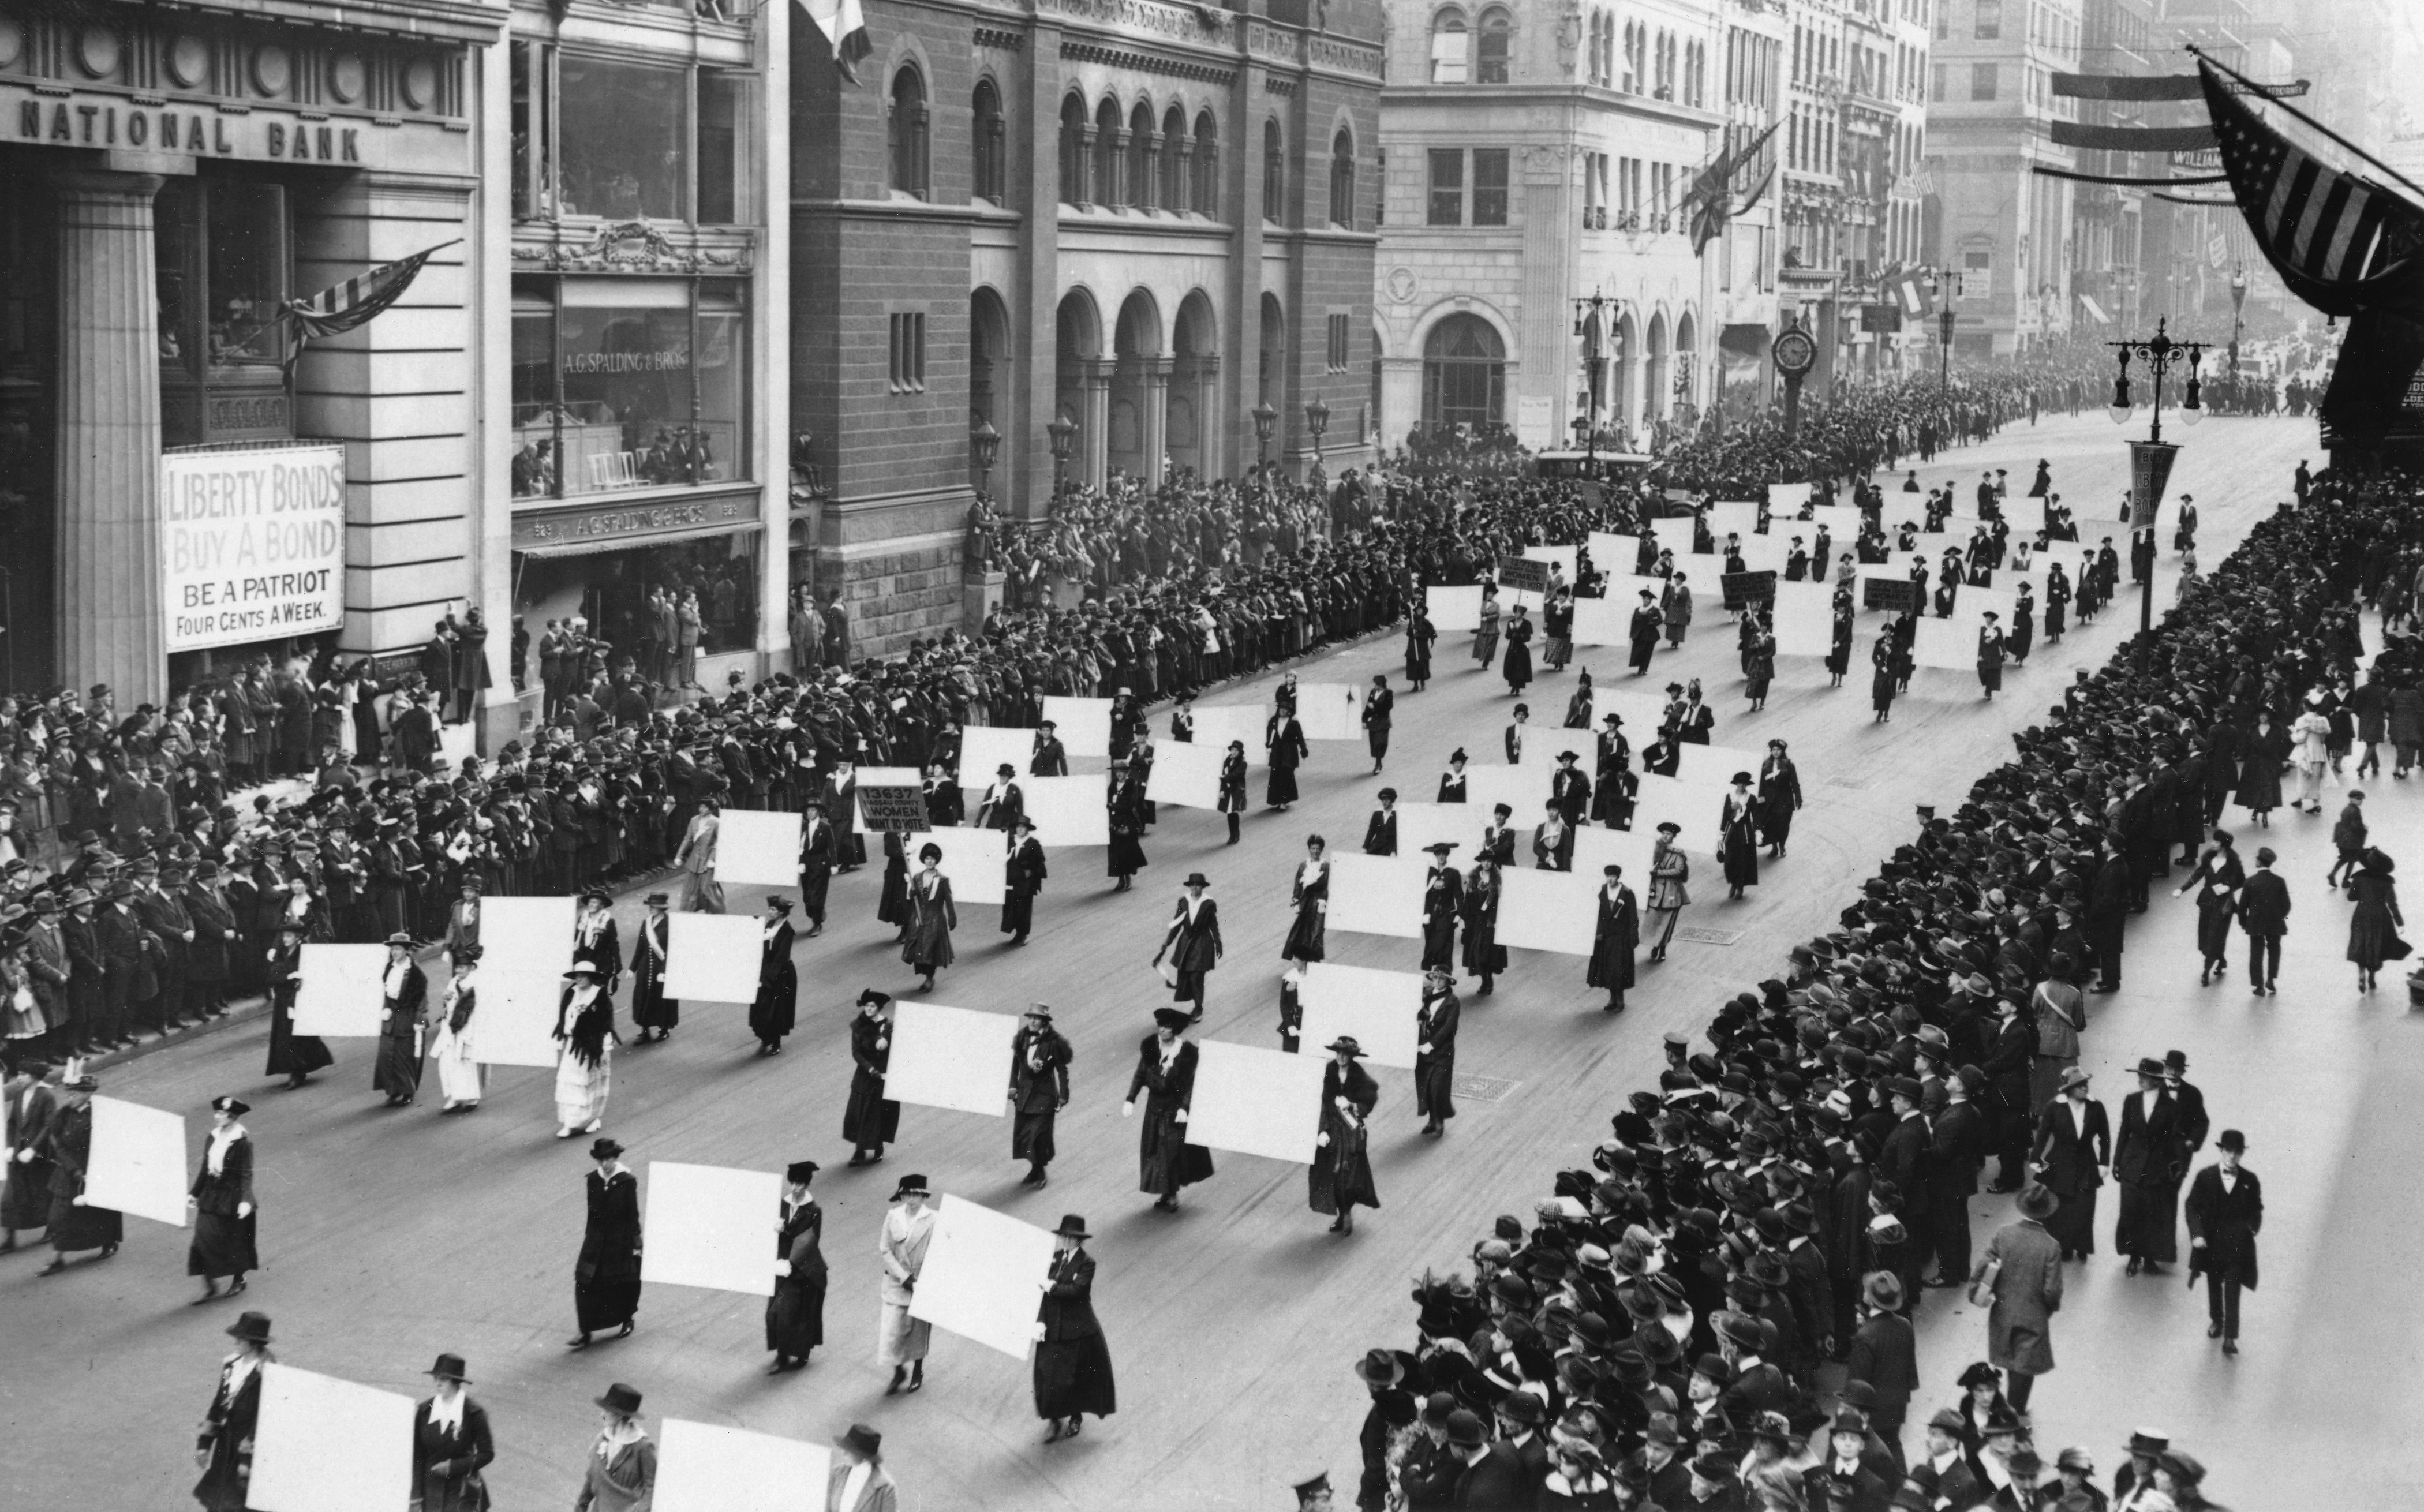 The history of women's representation in New York | CSNY